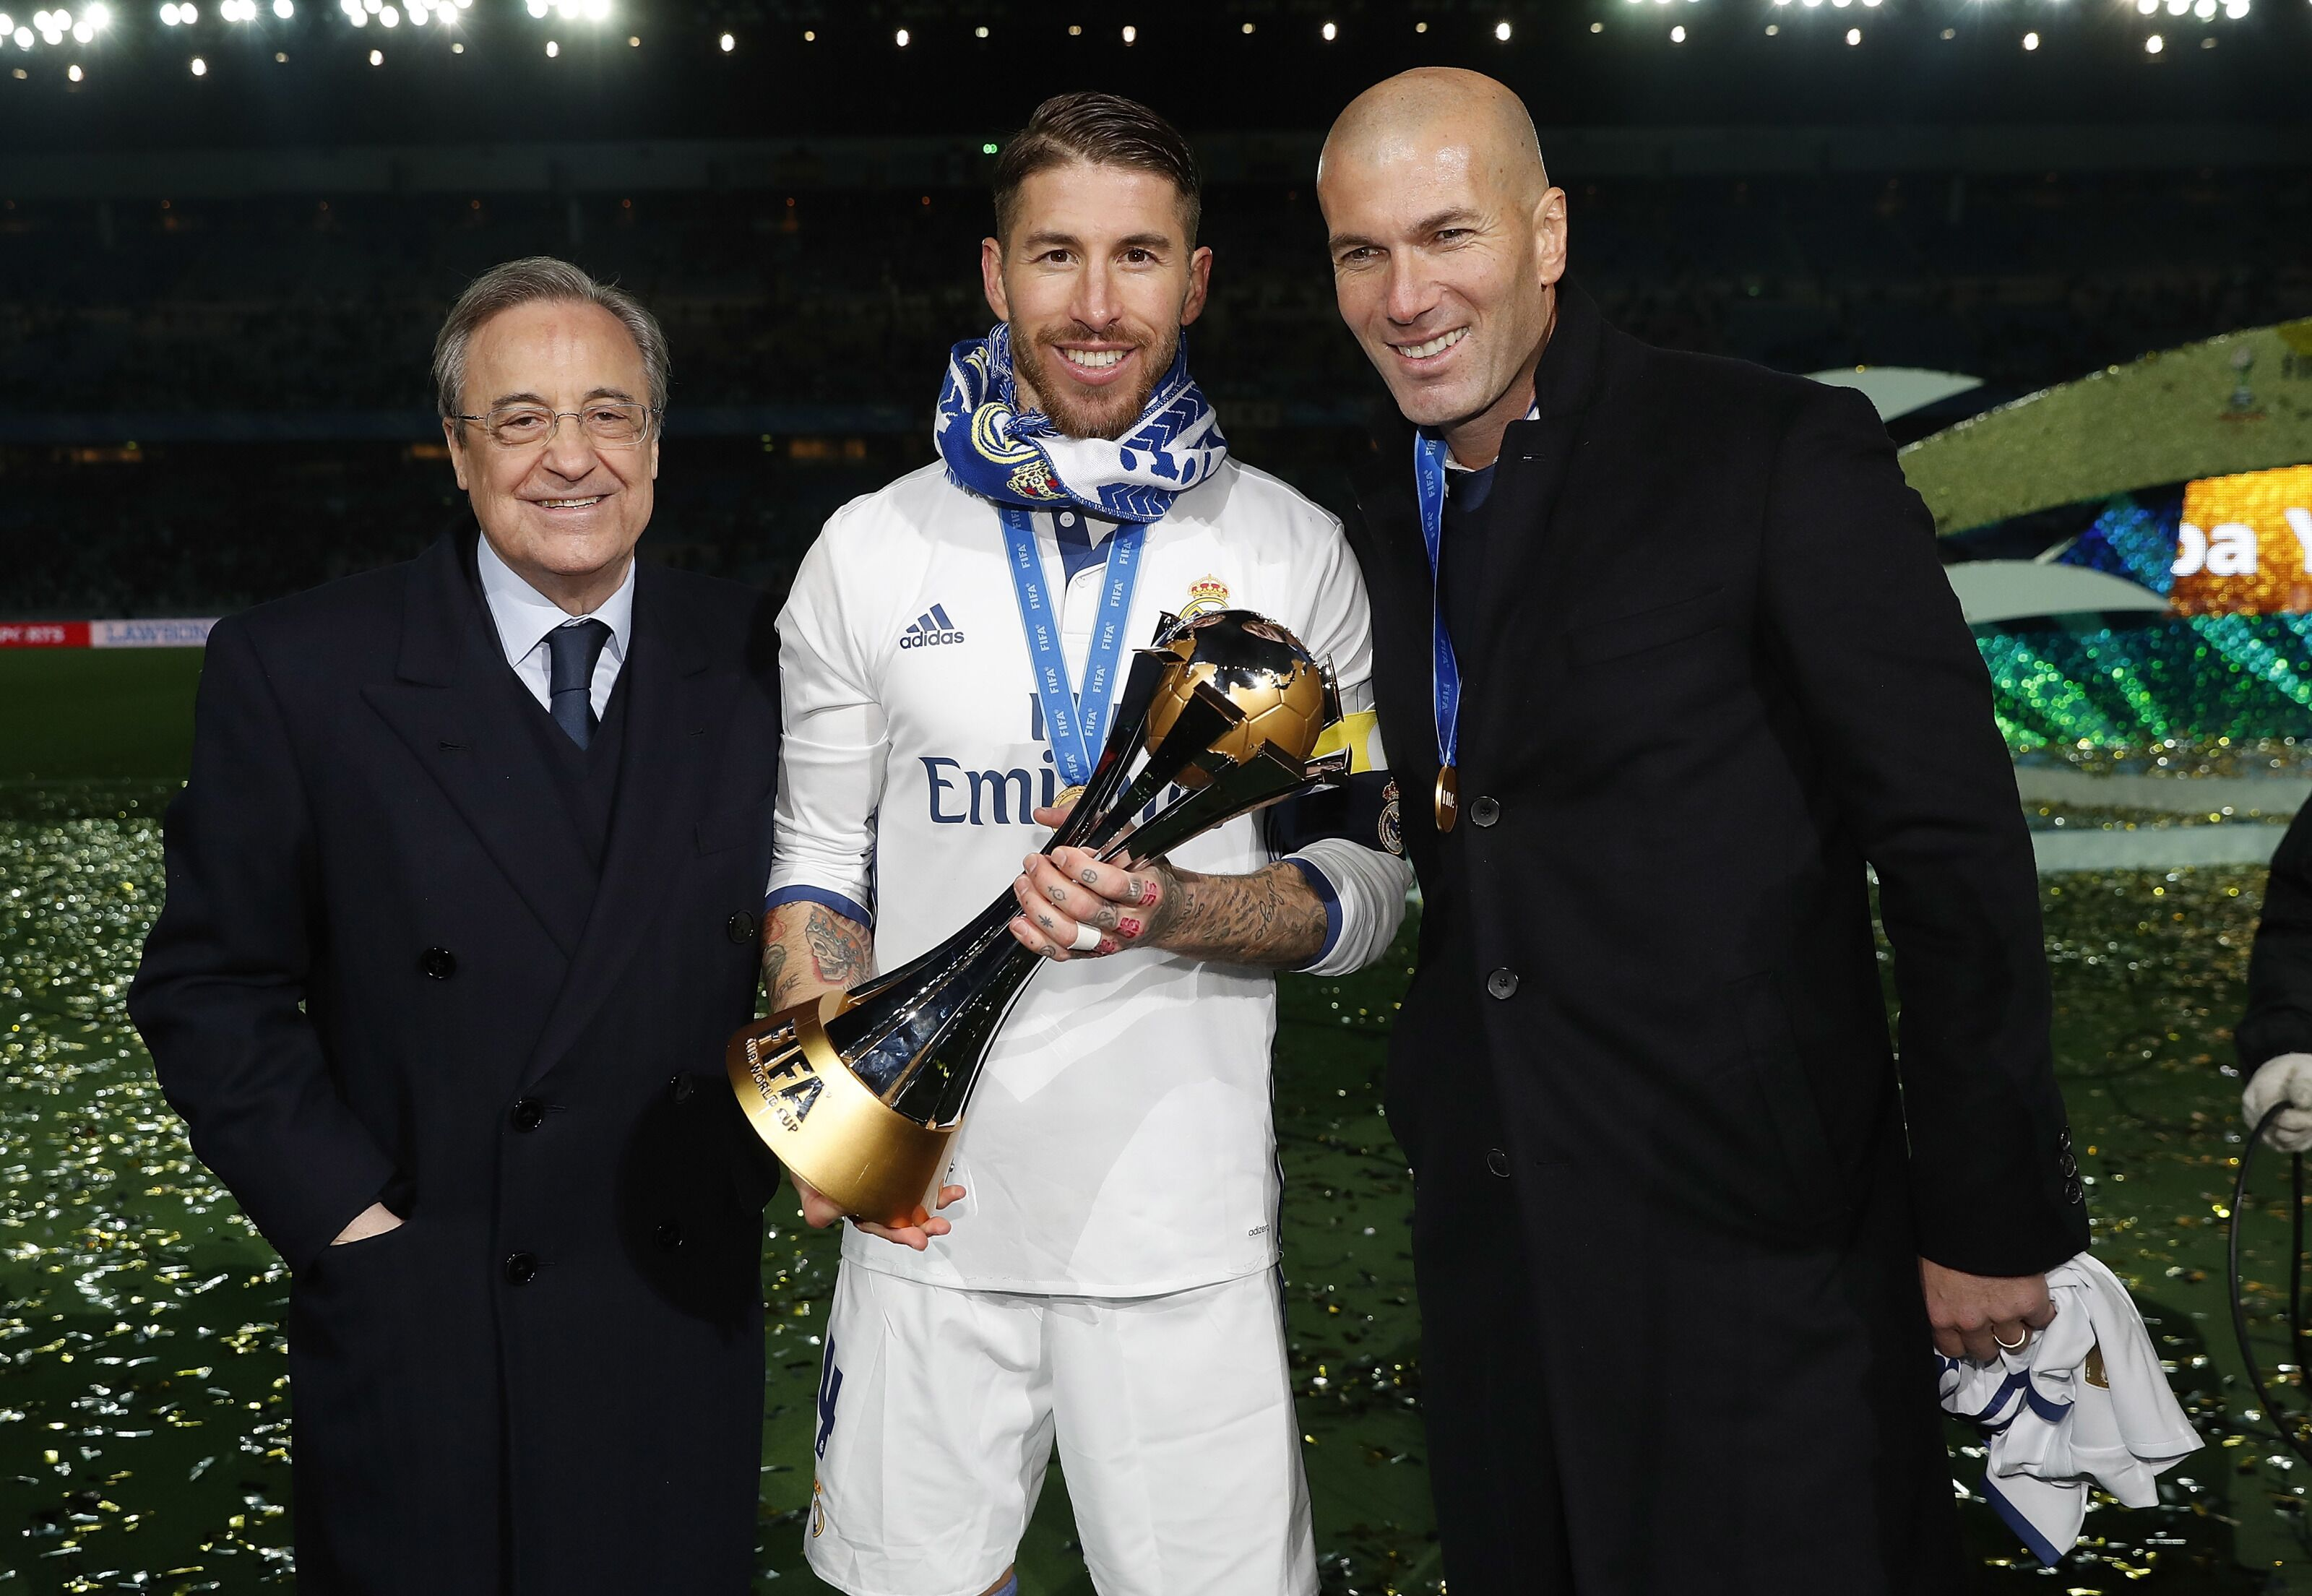 Sergio Ramos and Zinedine Zidane decide on five transfers for Real Madrid to pursue